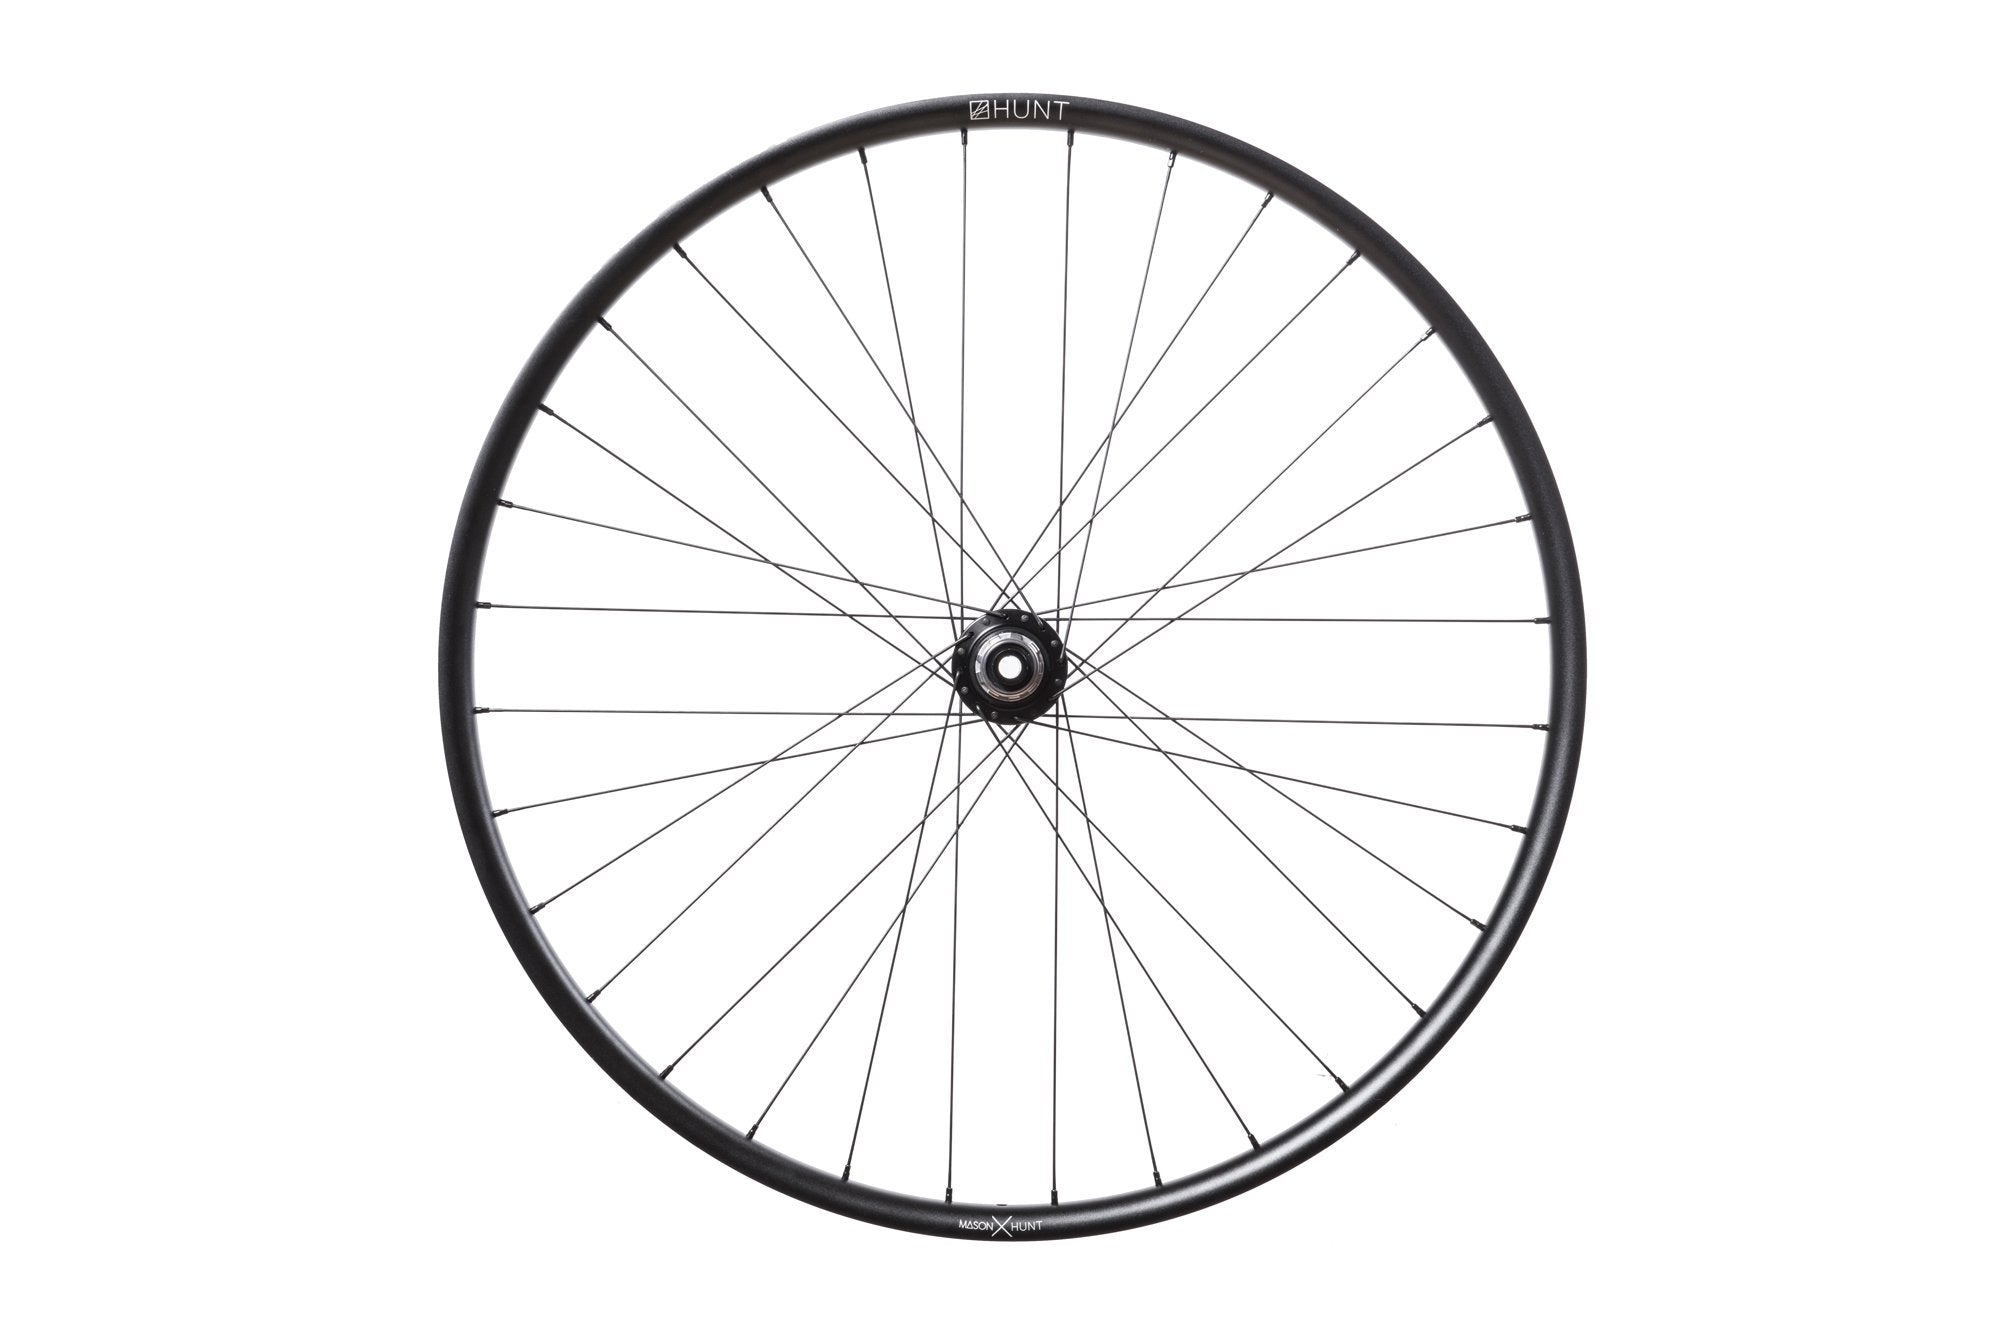 <html><h1>Weight</h1><i>The consequence of the fanatic attention to detail is incredible durability and a resulting low 2165g wheelset weight.</i></html>